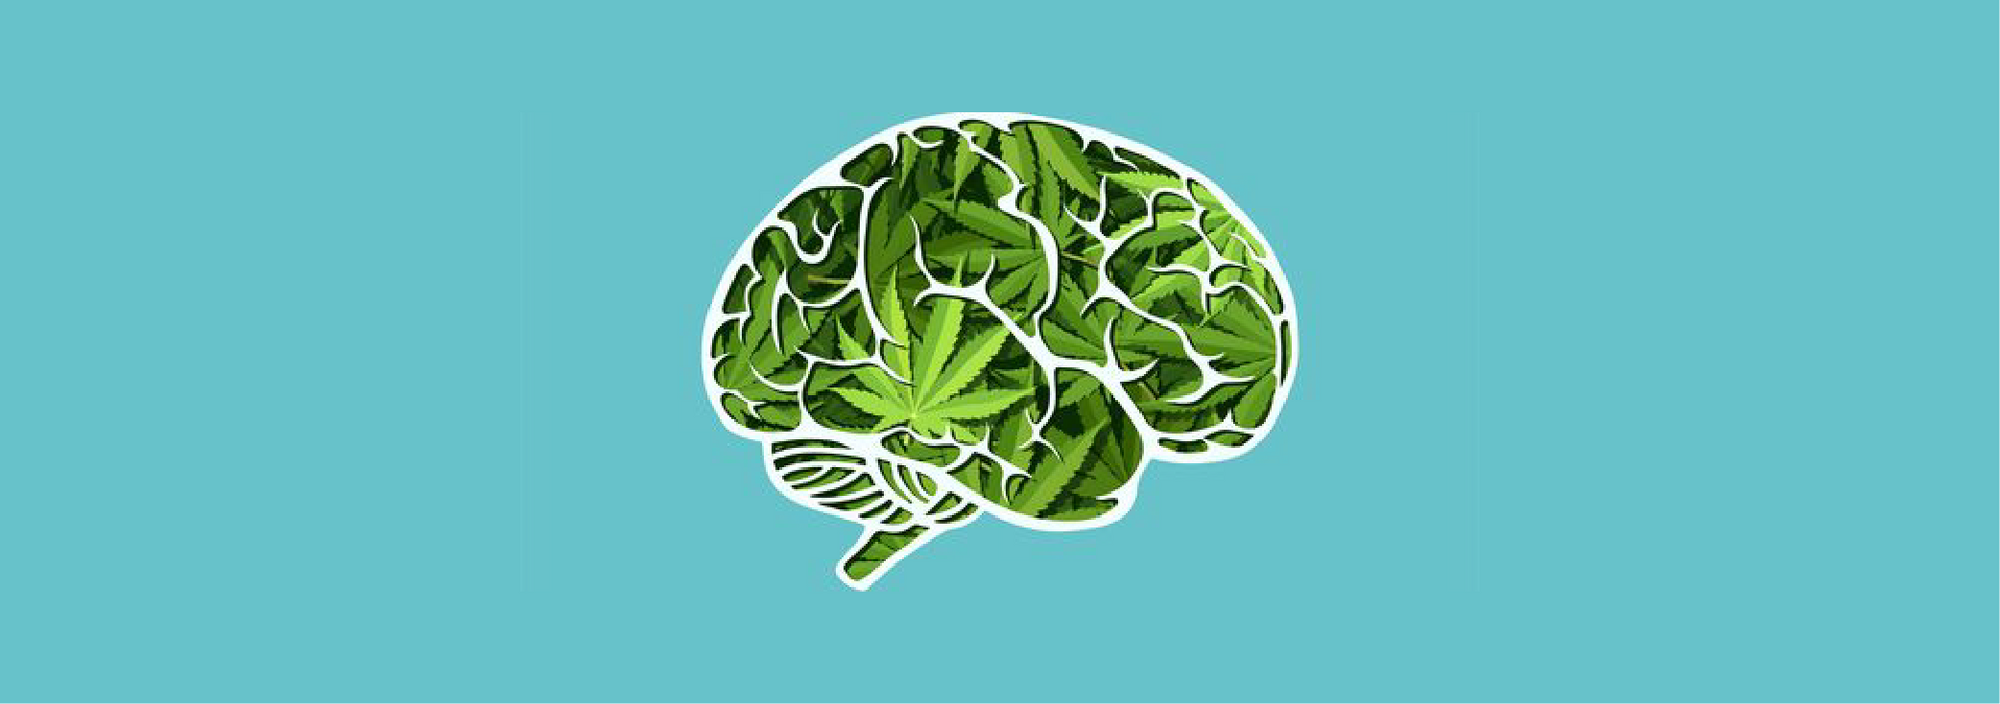 How Does CBD Affect the Brain